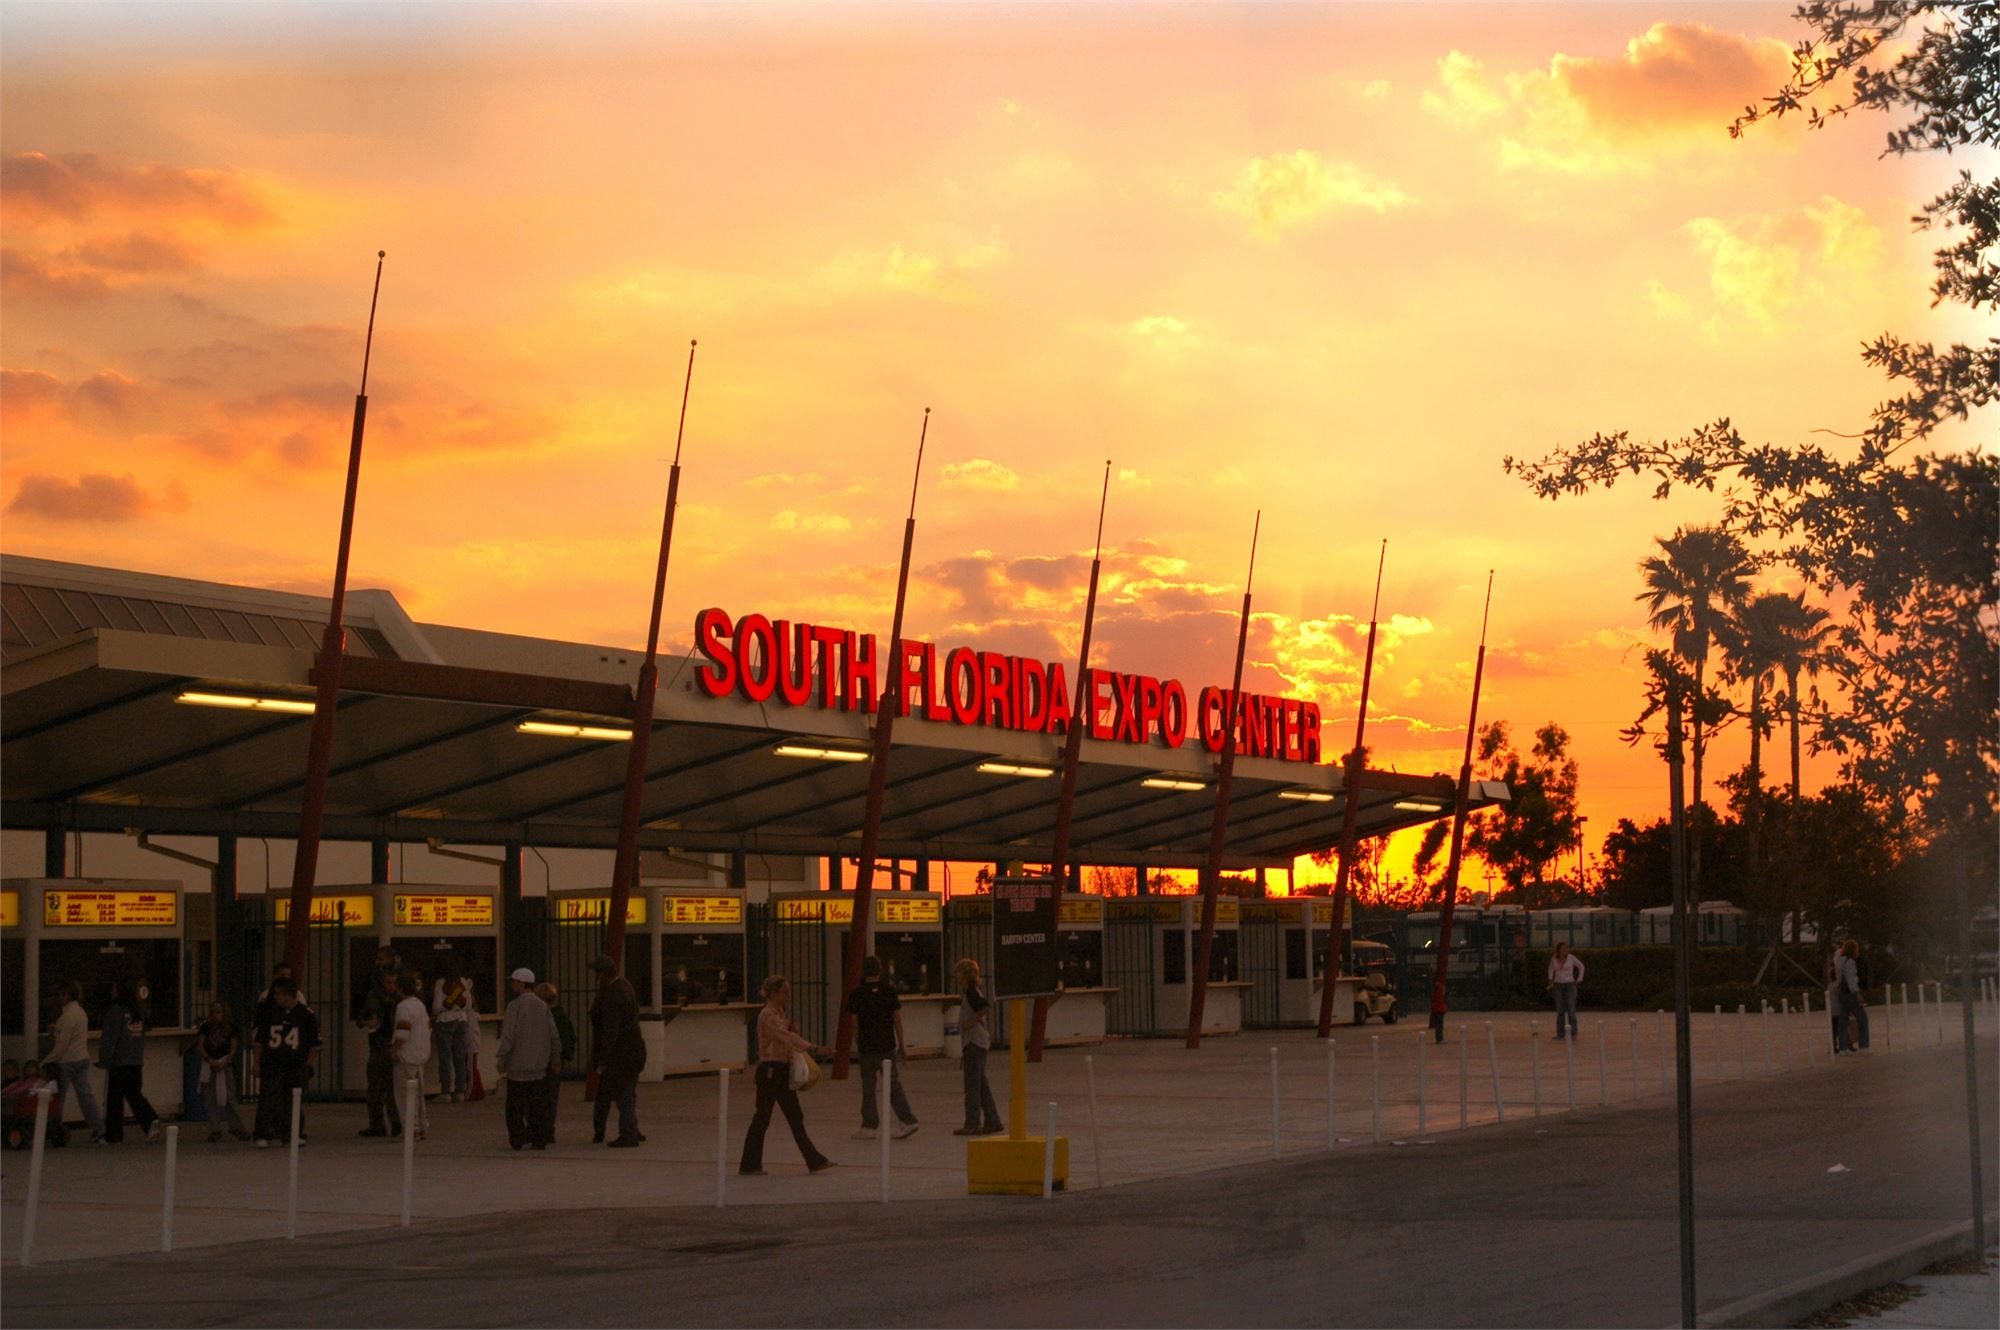 Expo Center At The South Florida Fairgrounds pertaining to South Florida Fairgrounds Event Schedule